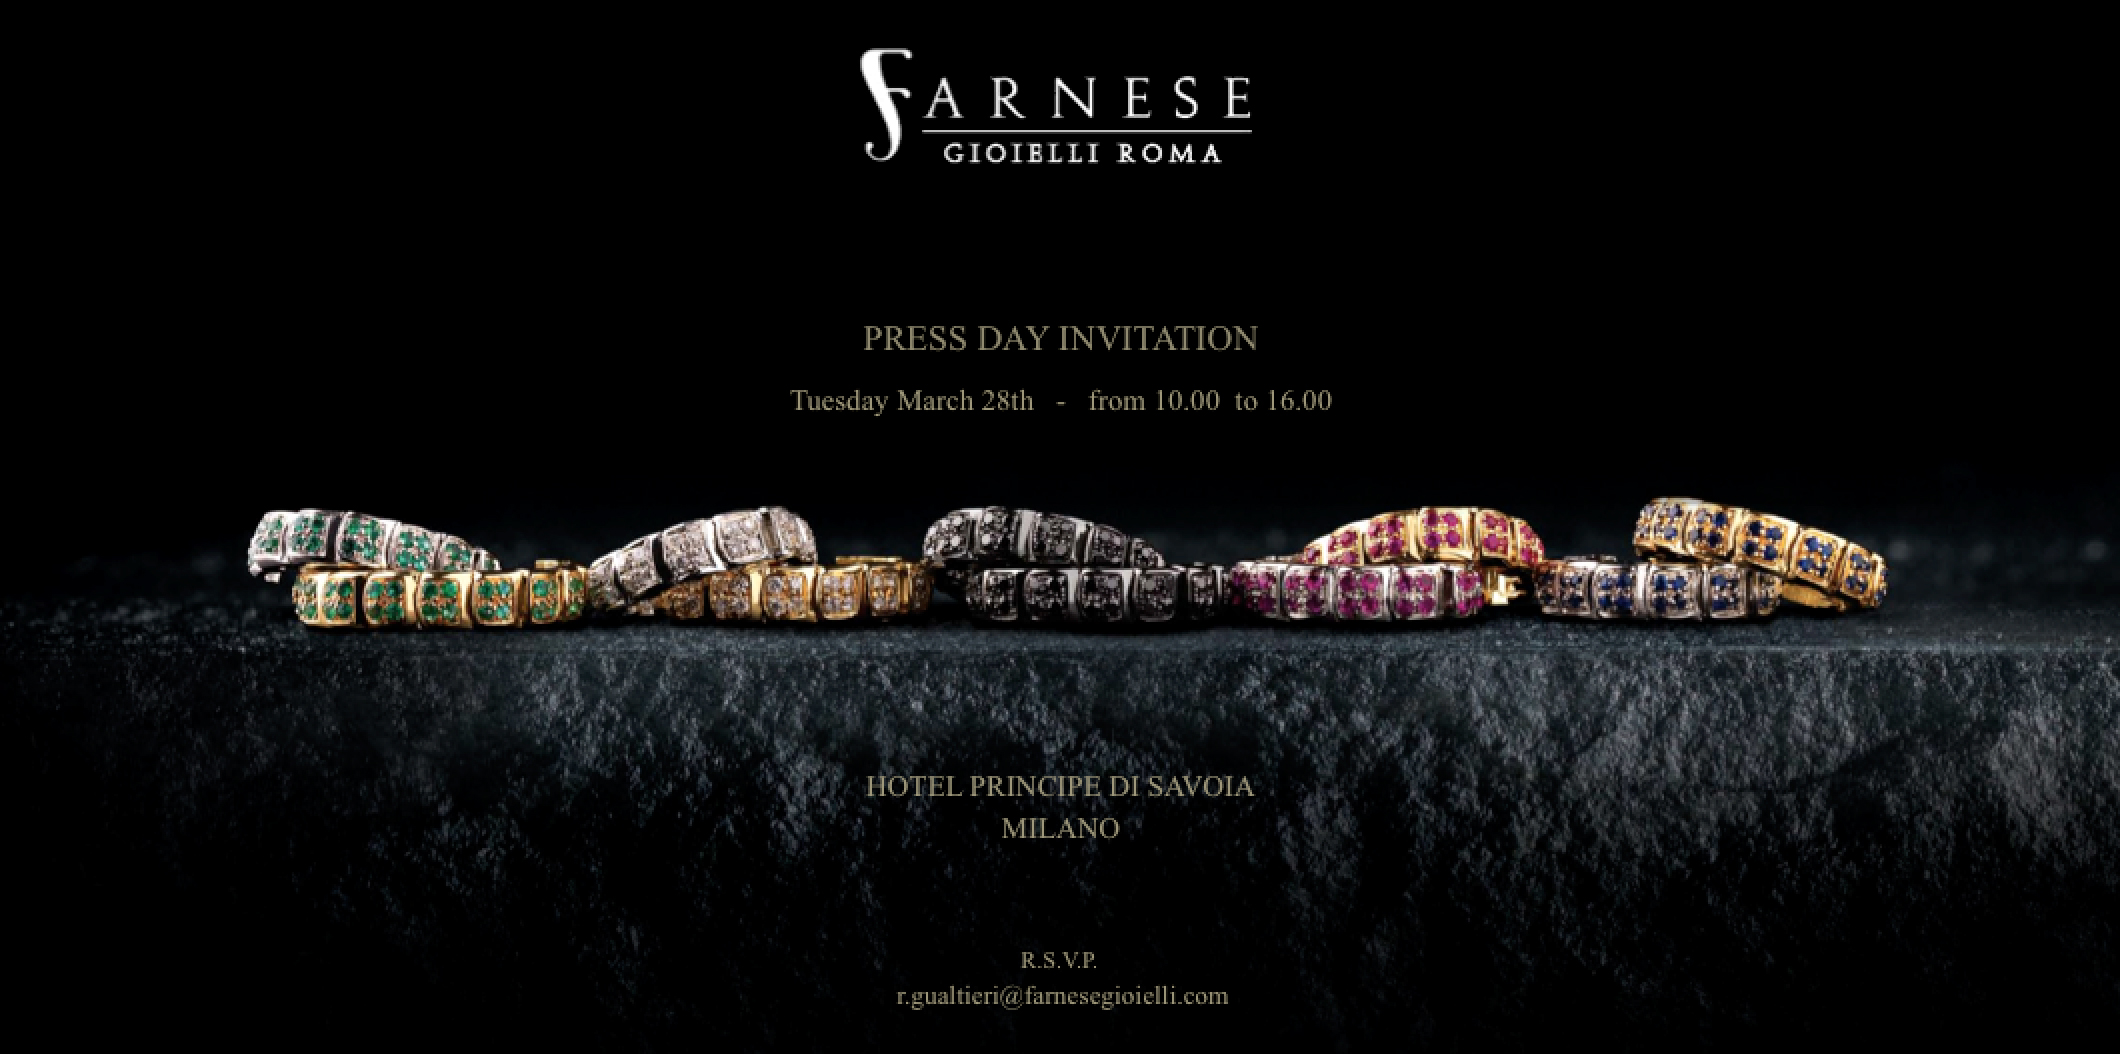 FARNESE PRESS DAY INVITATION